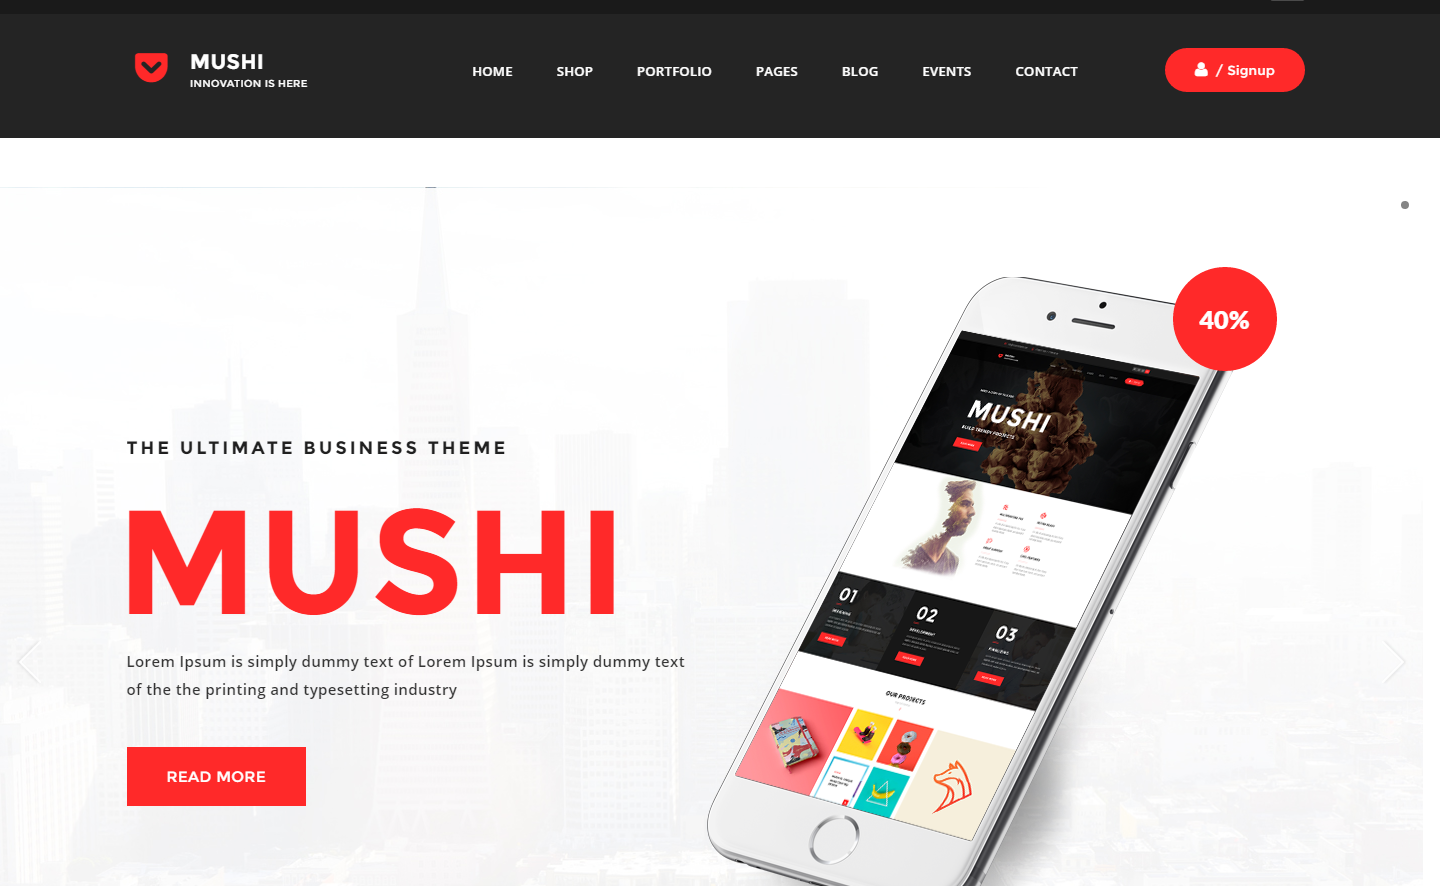 mushi-premium-wordpress-theme